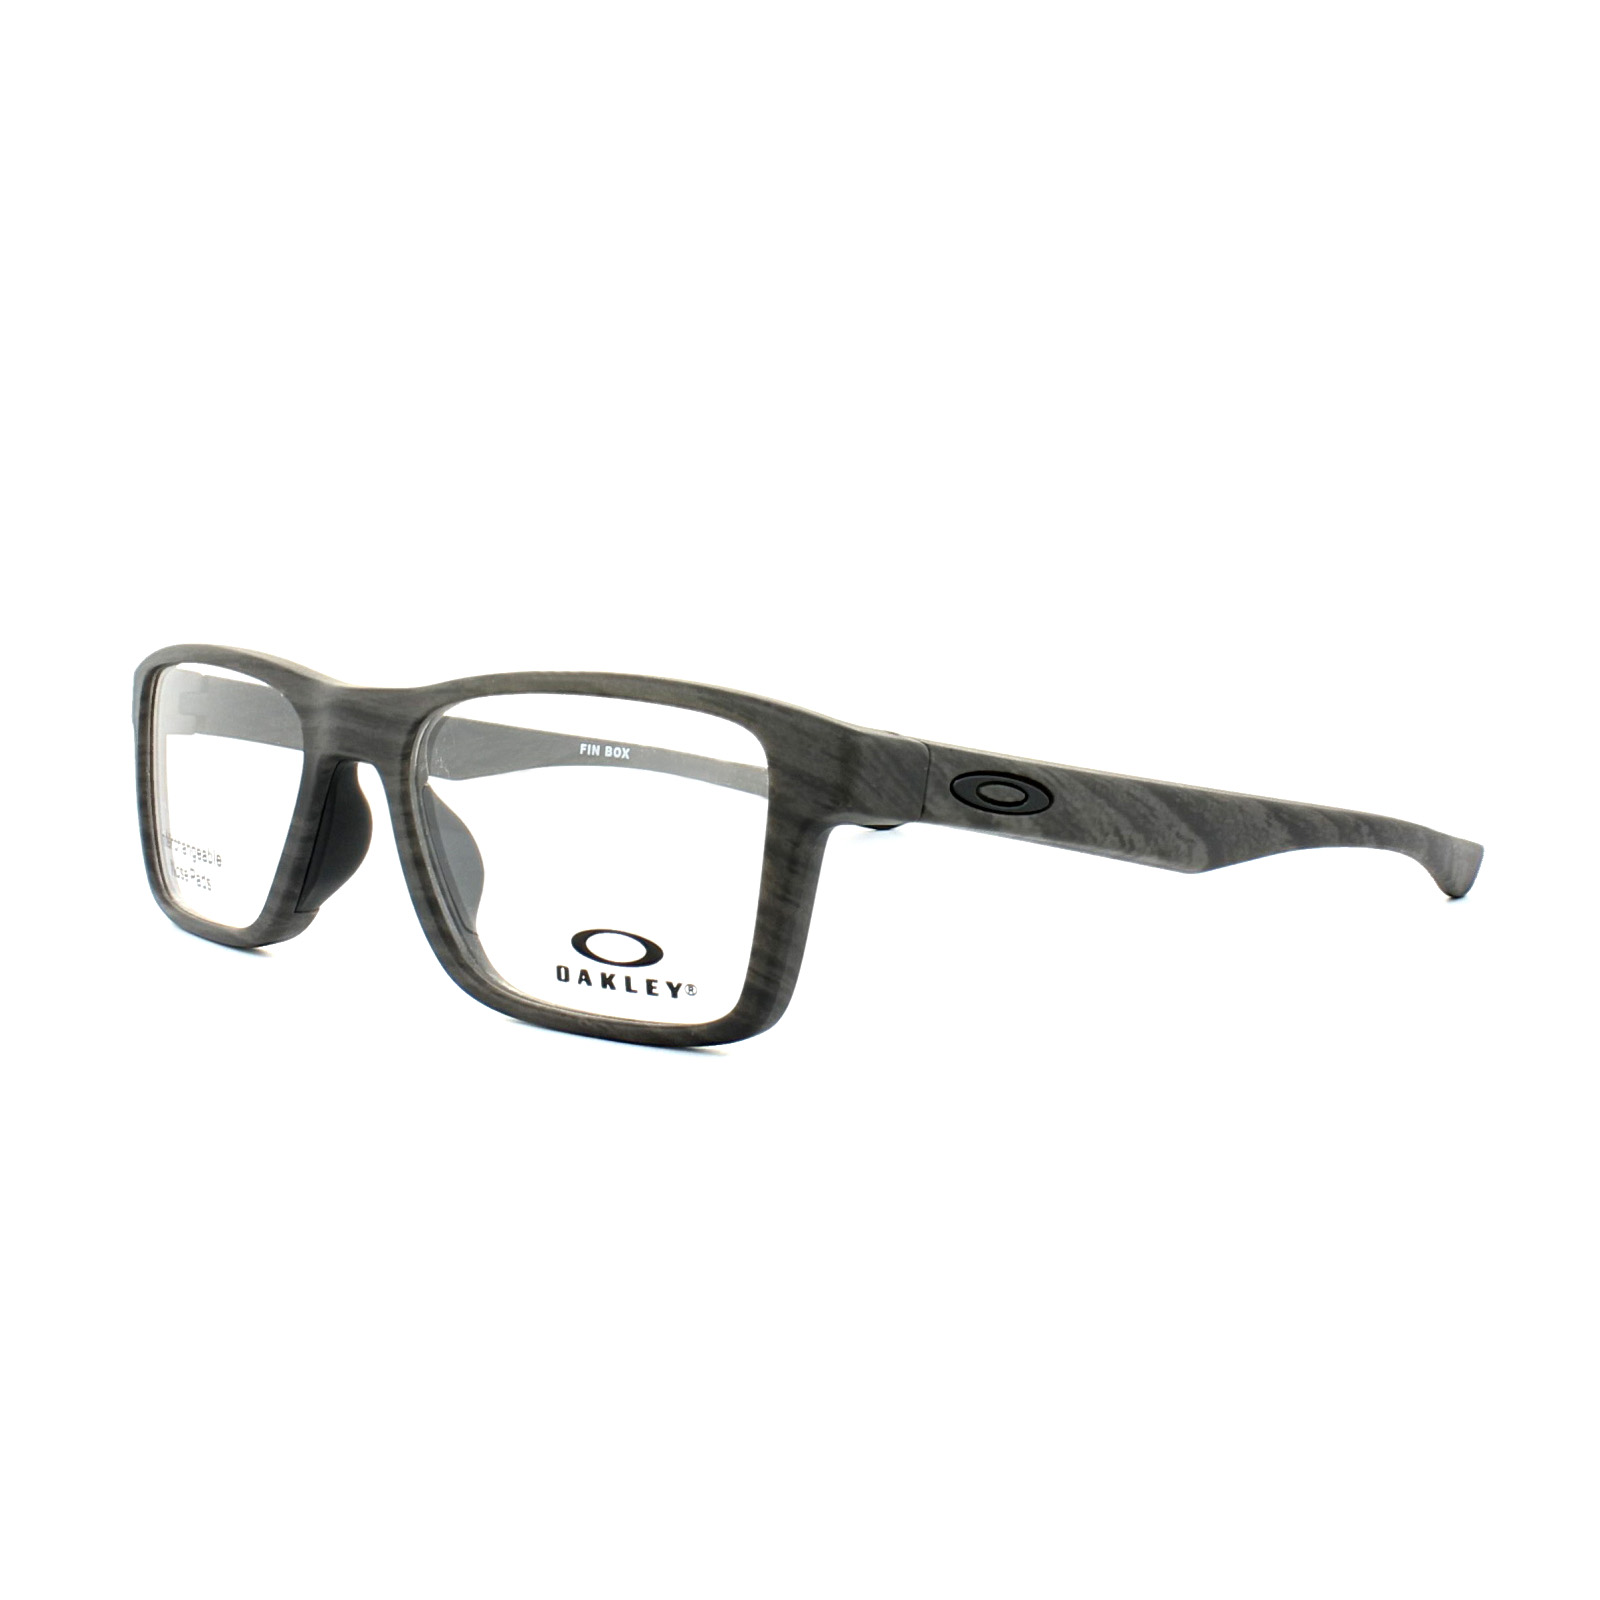 2528d4e055 ... usa sentinel oakley glasses frames fin box trubridge ox8108 03 woodgrain  d9f60 777ab ...